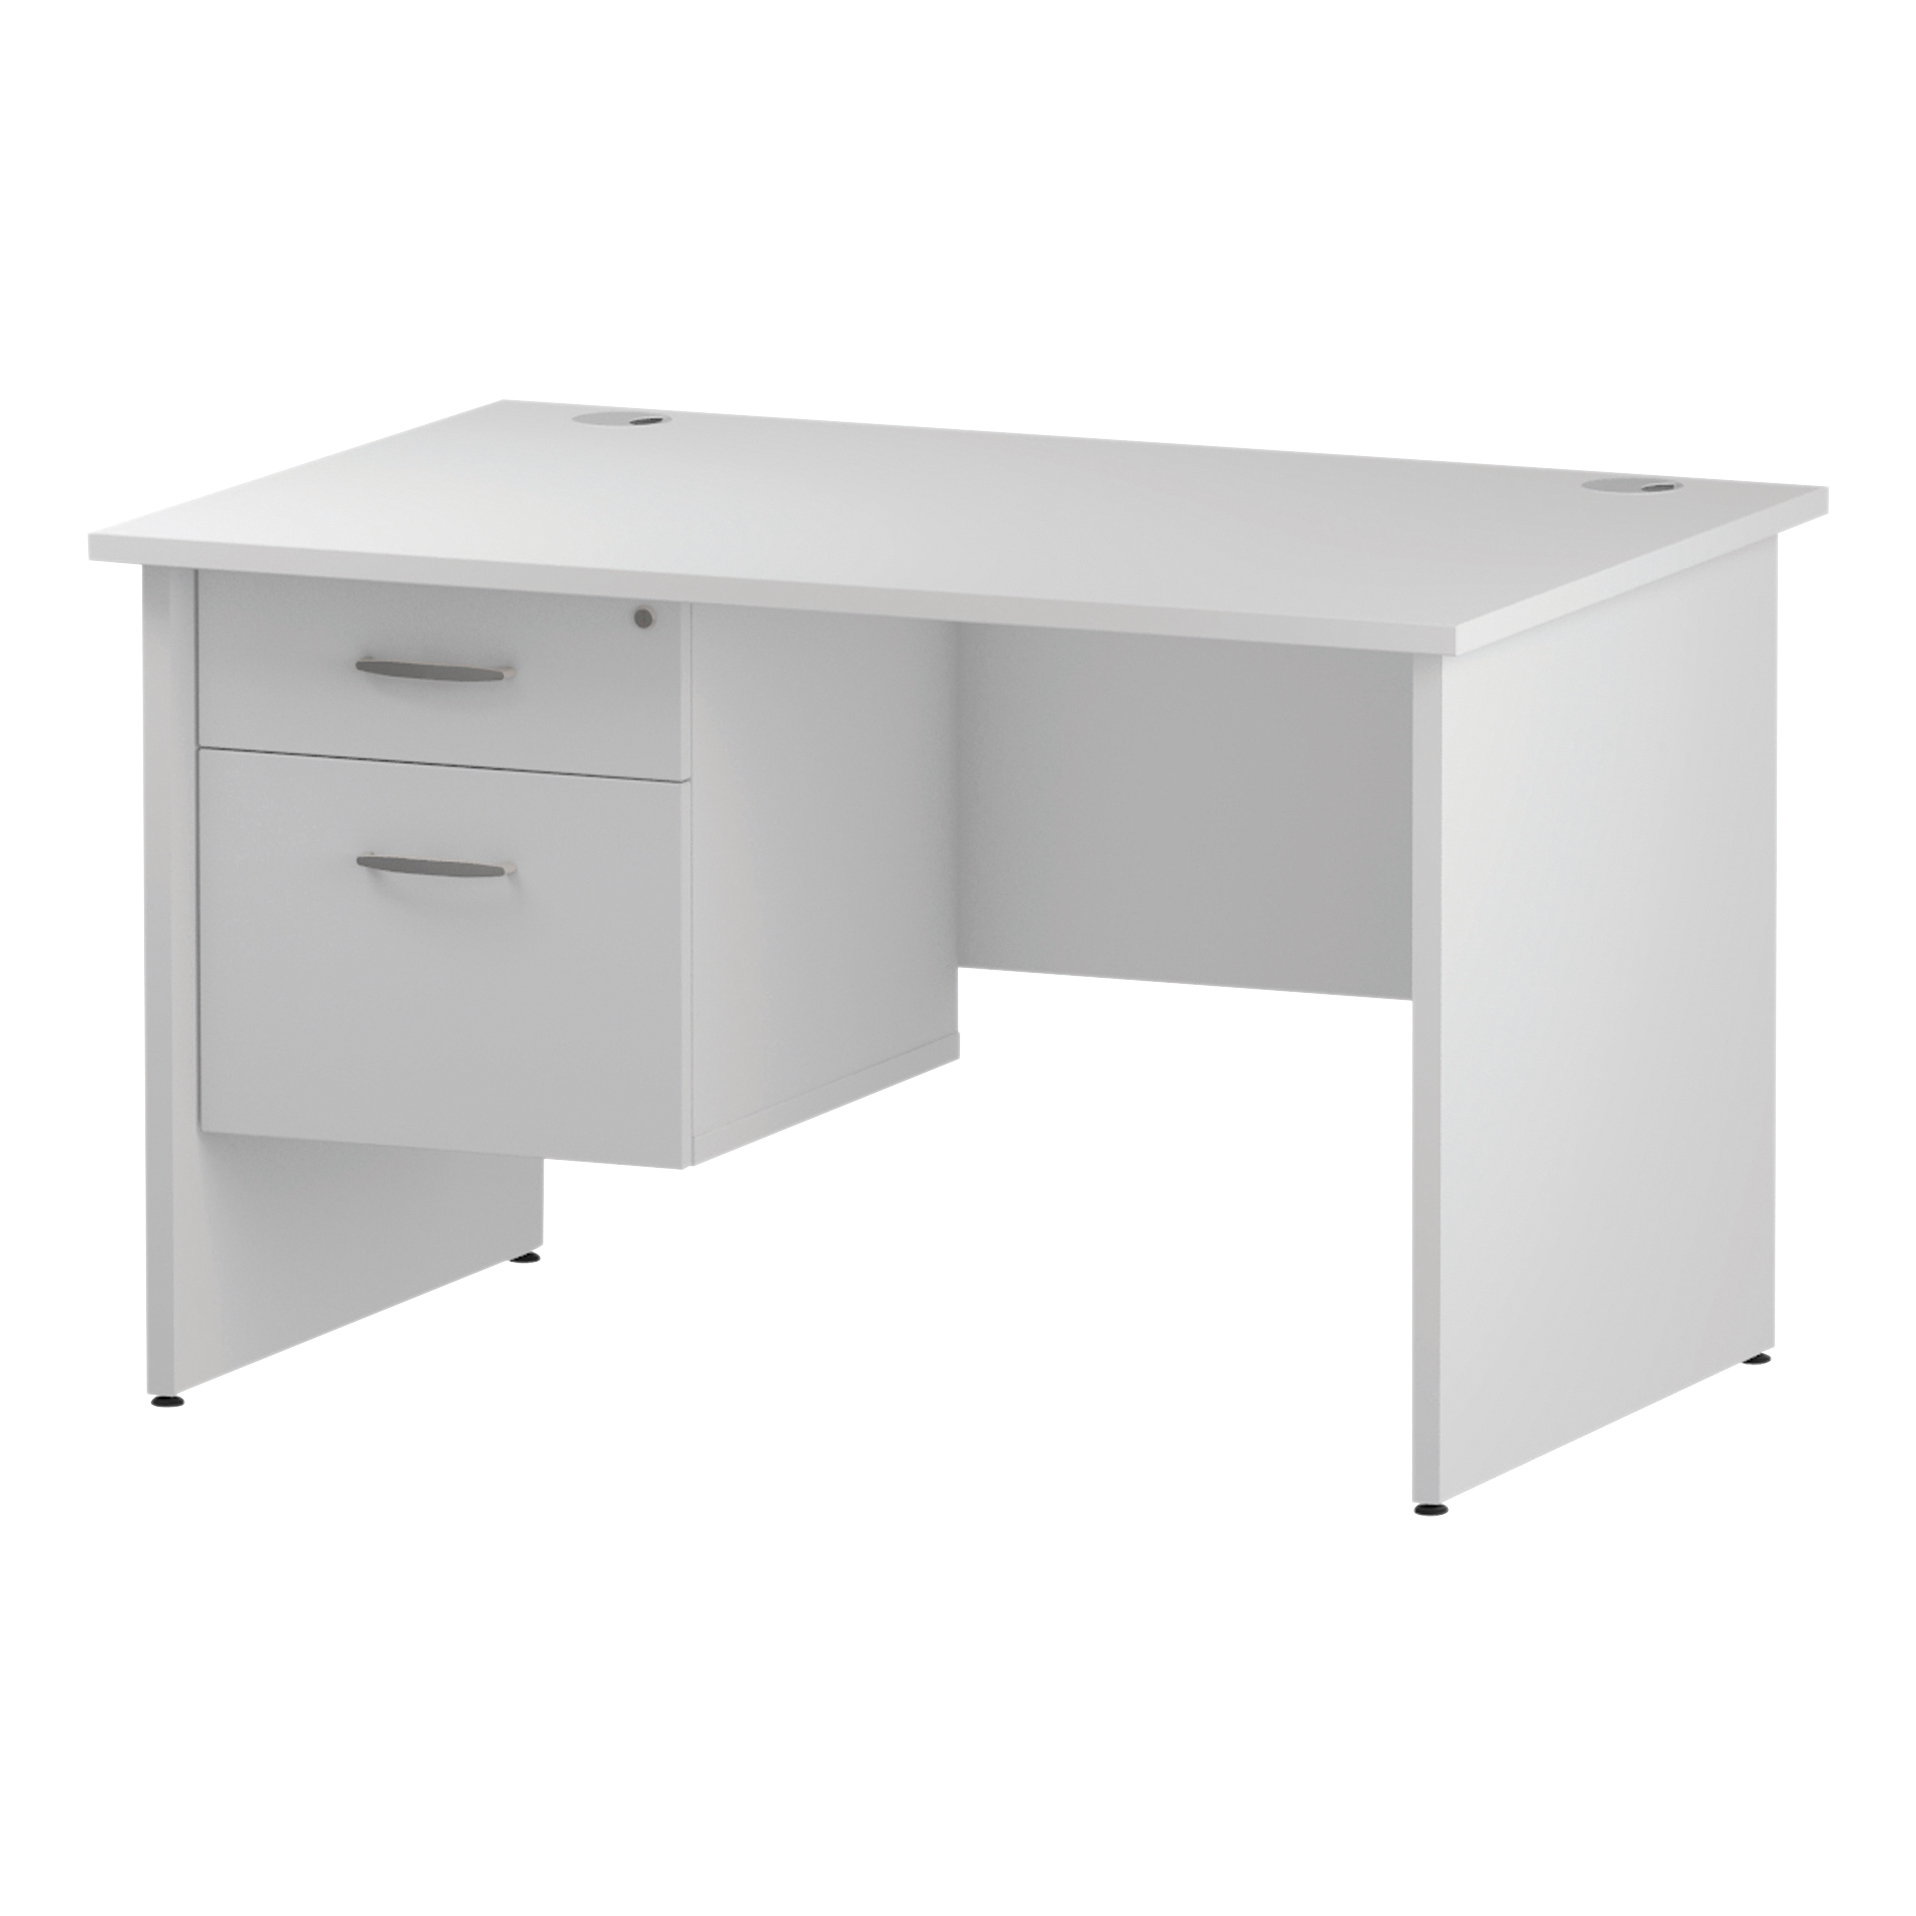 Trexus Rectangular Desk Panel End Leg 1200x800mm Fixed Pedestal 2 Drawers White Ref I002250